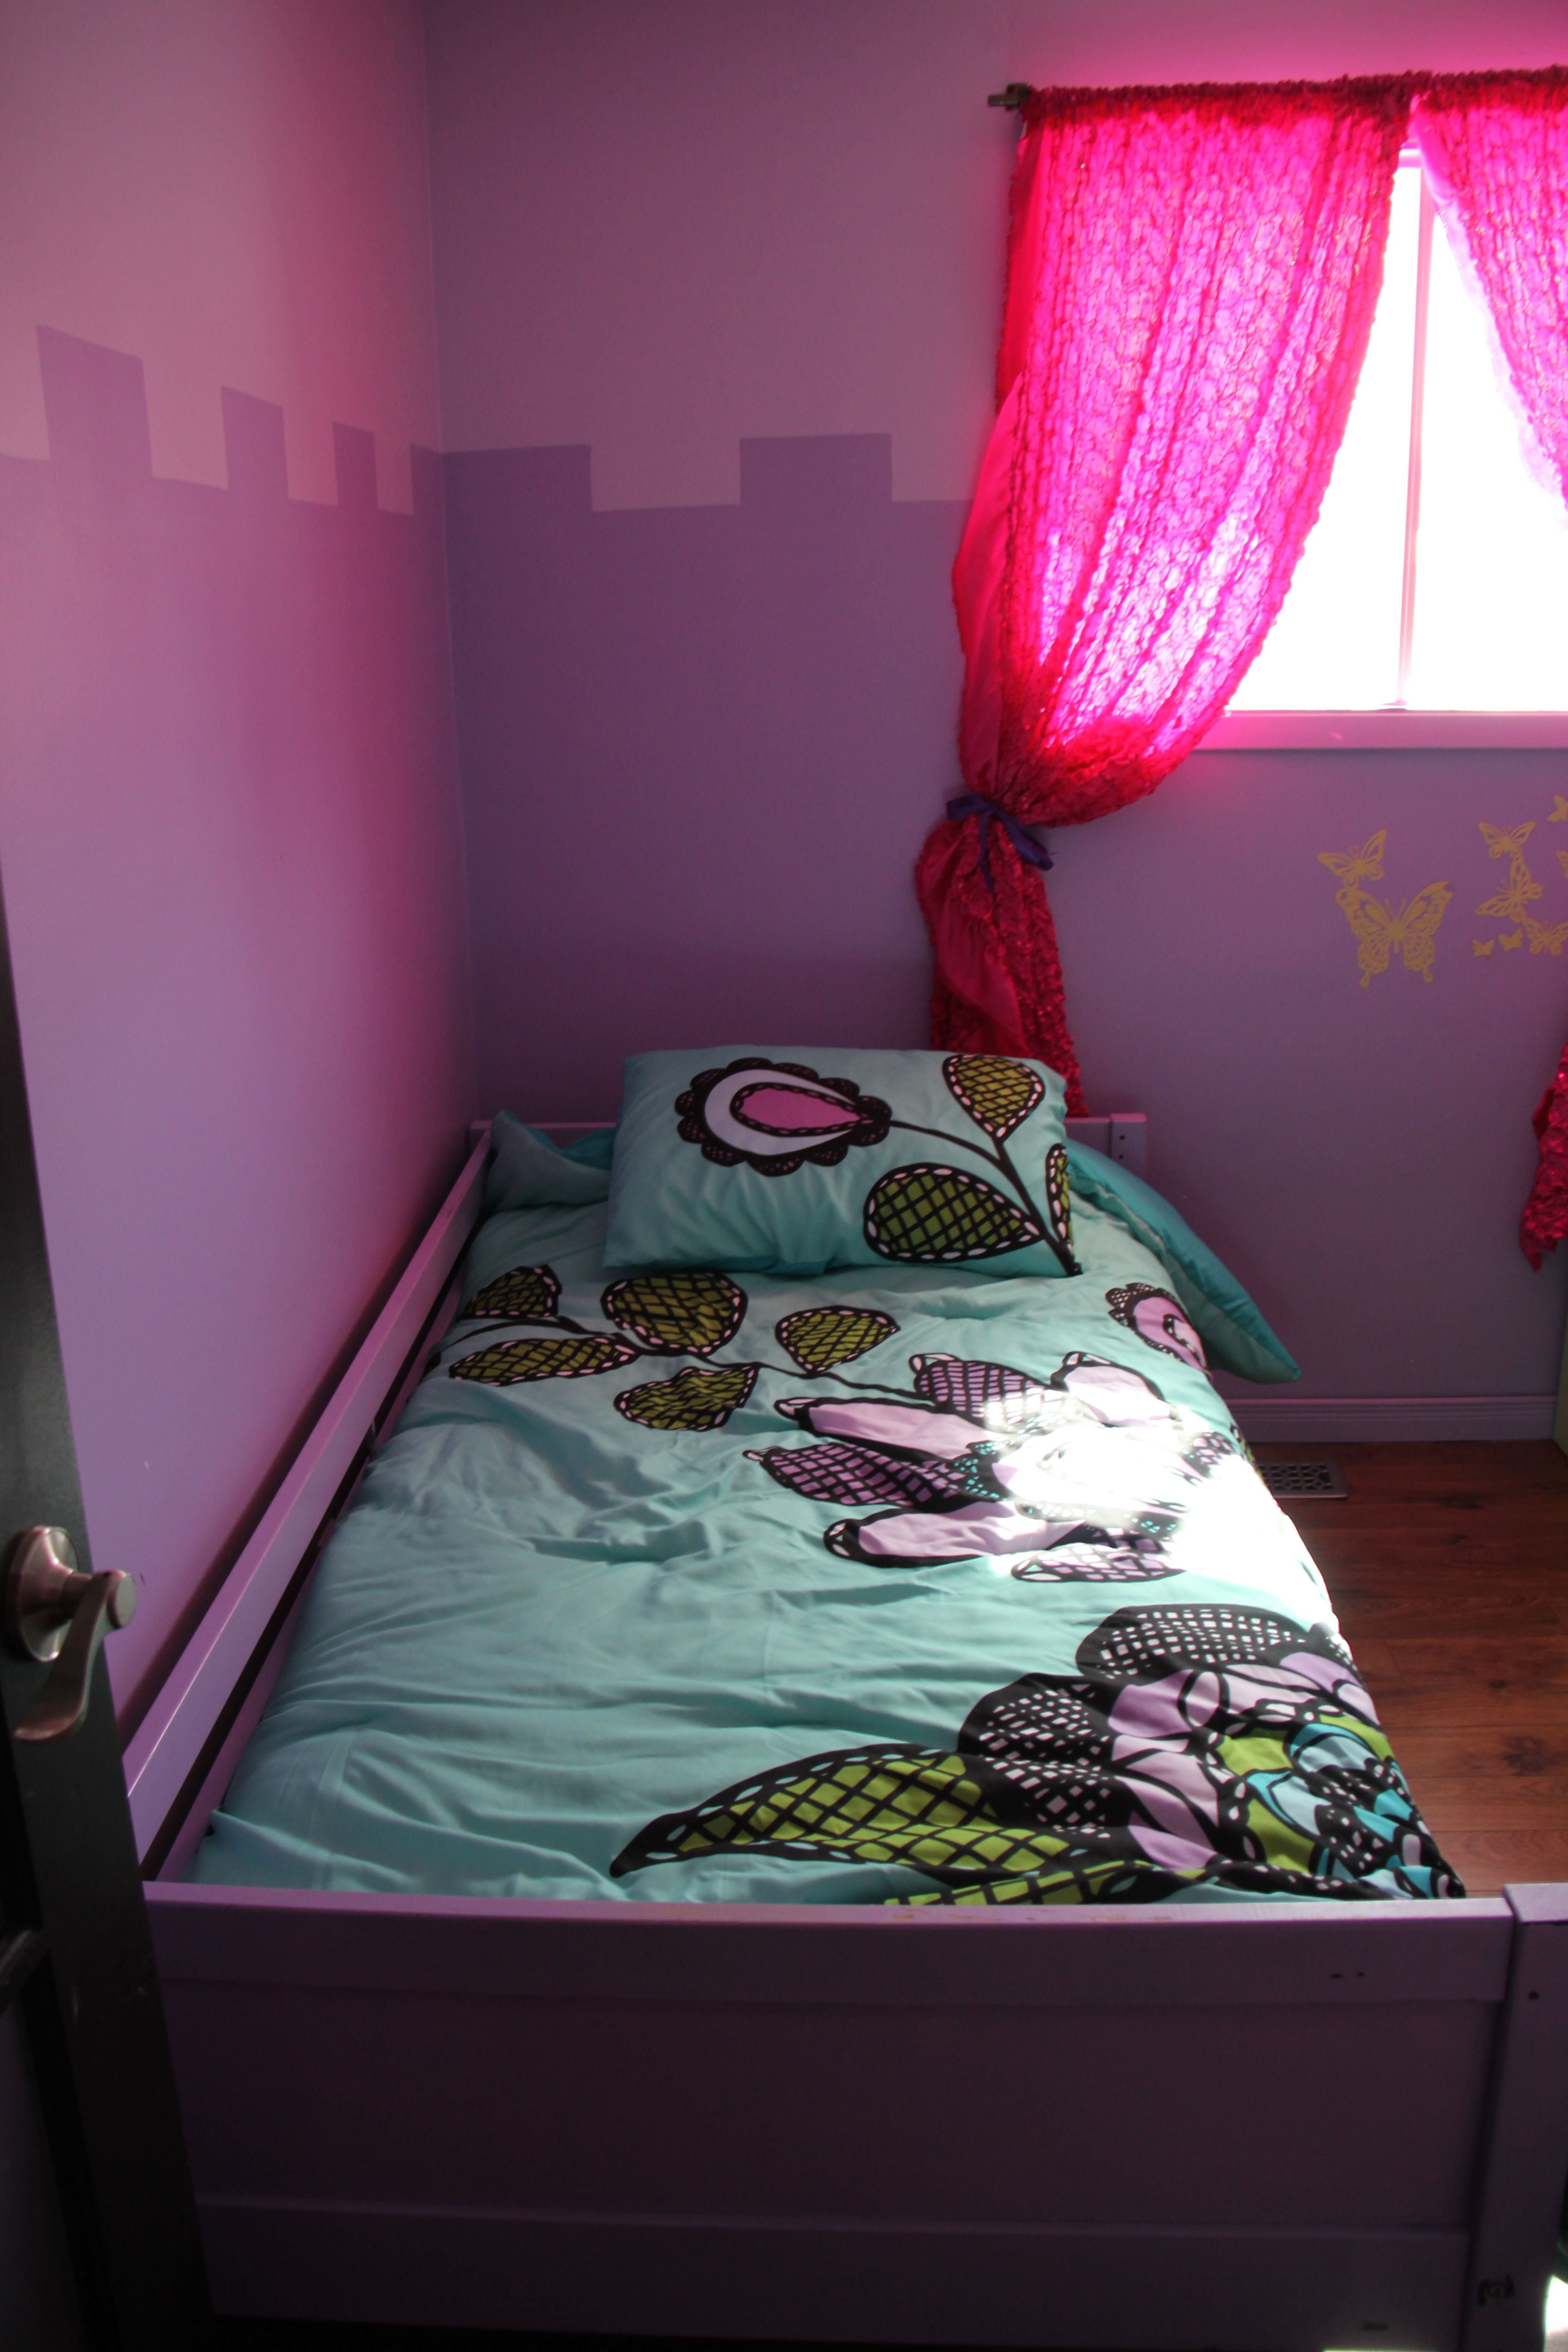 Bedroom Furniture High Resolution: Blondie Lockes Themed Bedding Set. Since They Don't Have